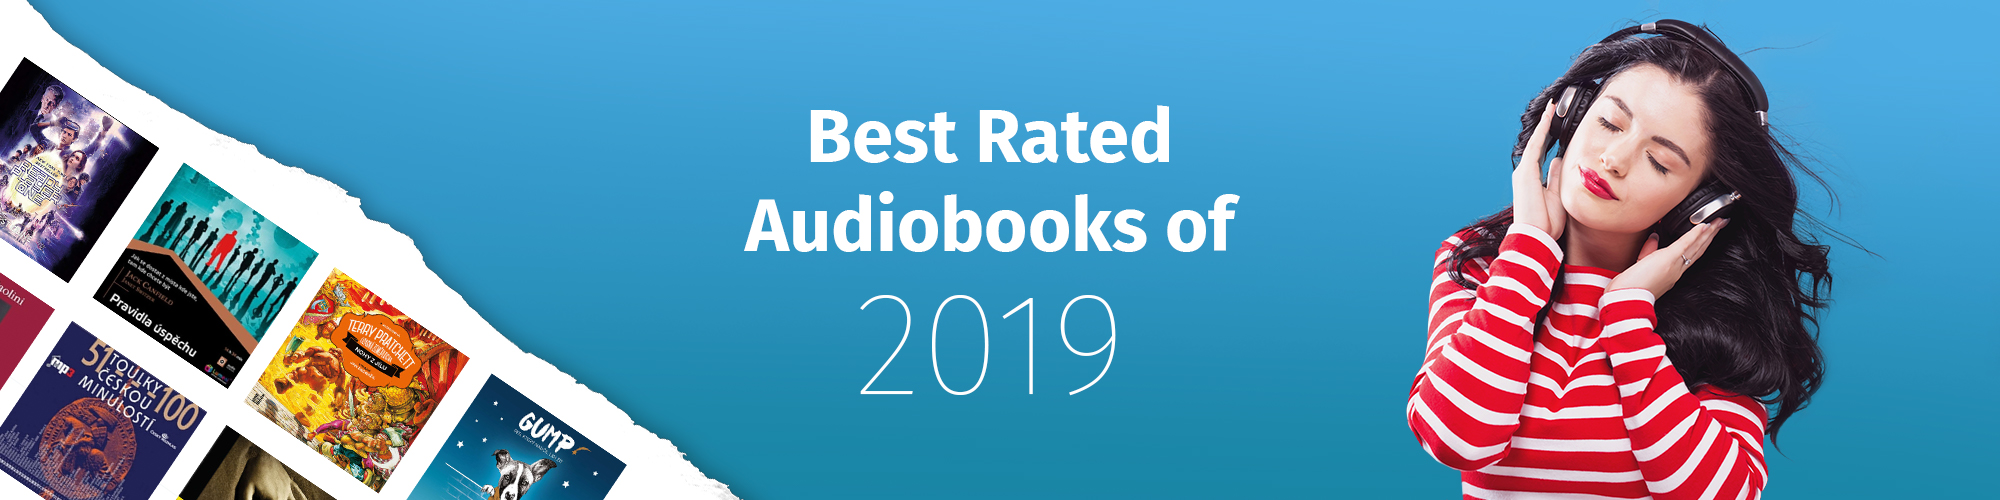 Best Rated Audiobooks of 2019